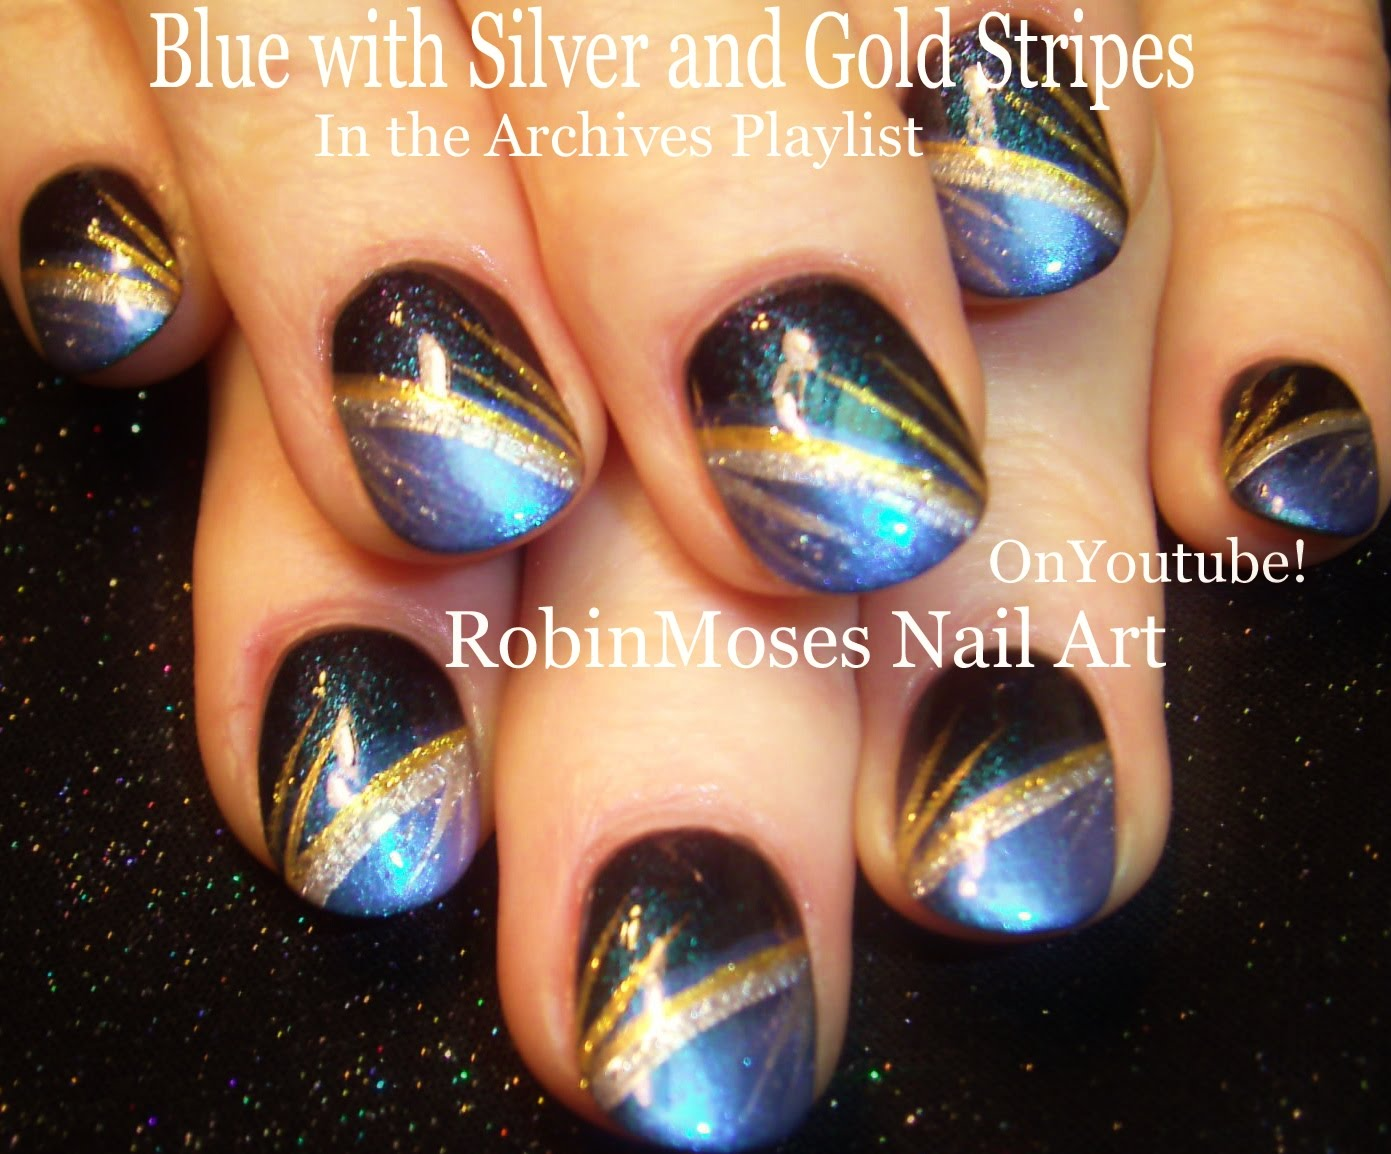 These Blue Nails With Silver Gold Stripes Are A Super Fun Nail Art Design